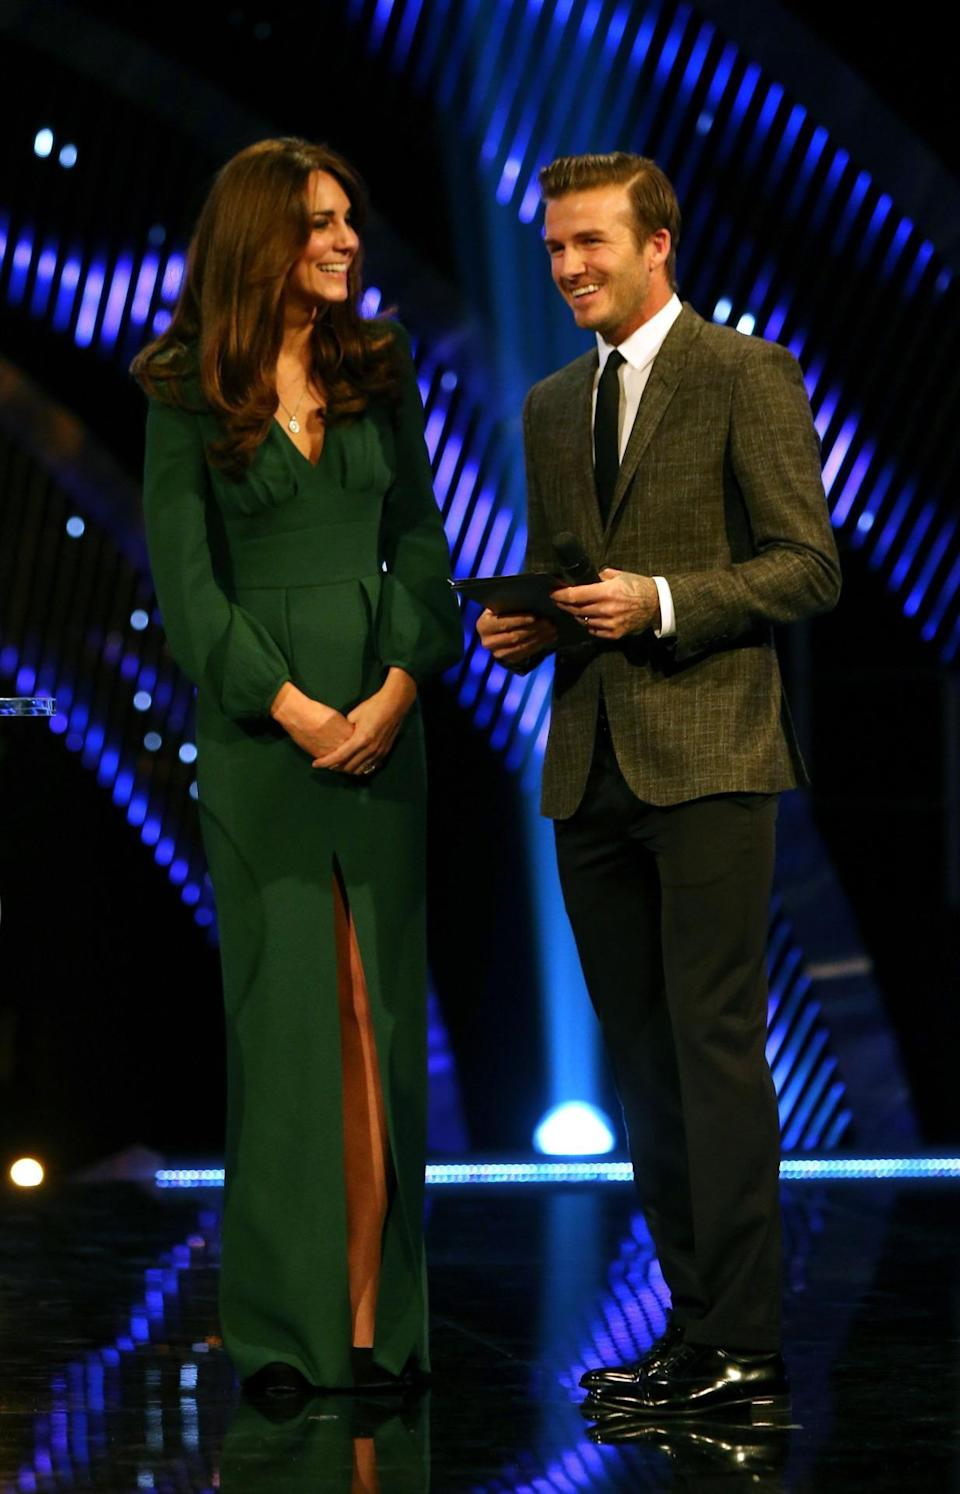 <p>Kate presented an award at the Sports Personality of the Year ceremony wearing a bottle green Alexander McQueen gown. Suede Jimmy Choo pumps completed the look.</p><p><i>[Photo: PA]</i></p>